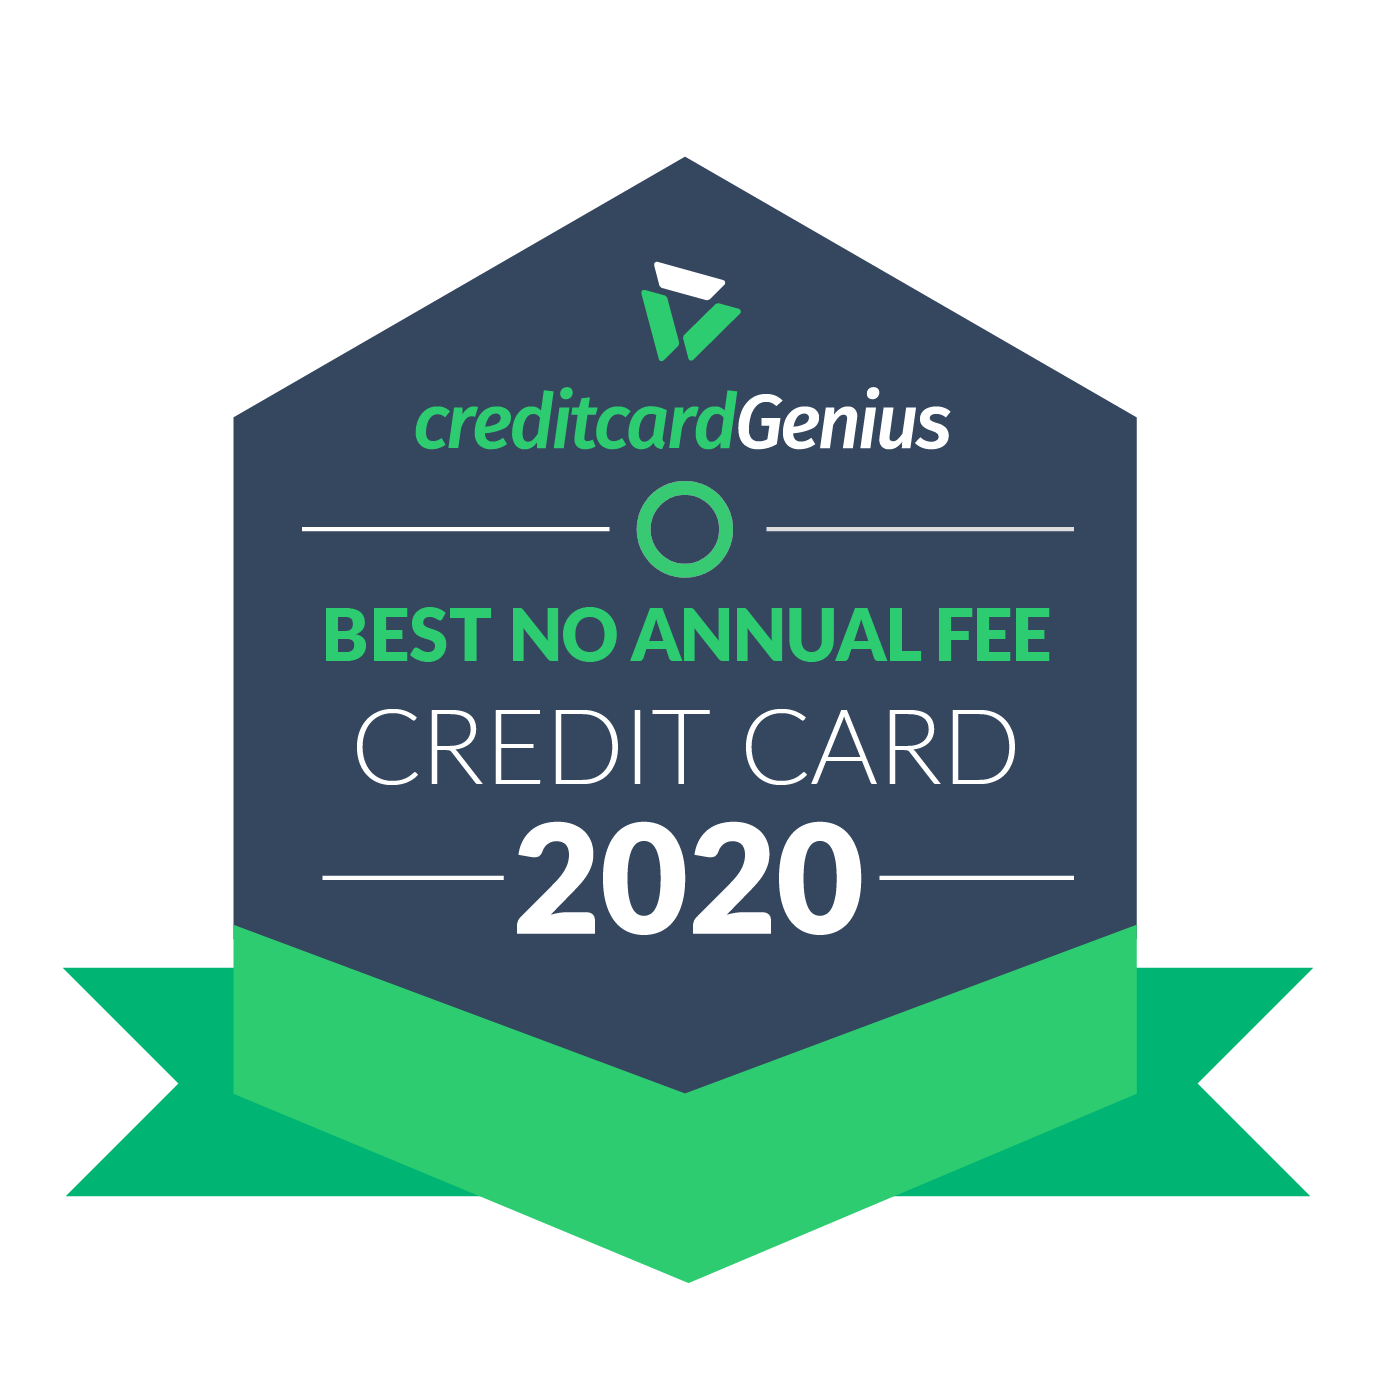 Best no annual fee credit card in Canada for 2020 award seal